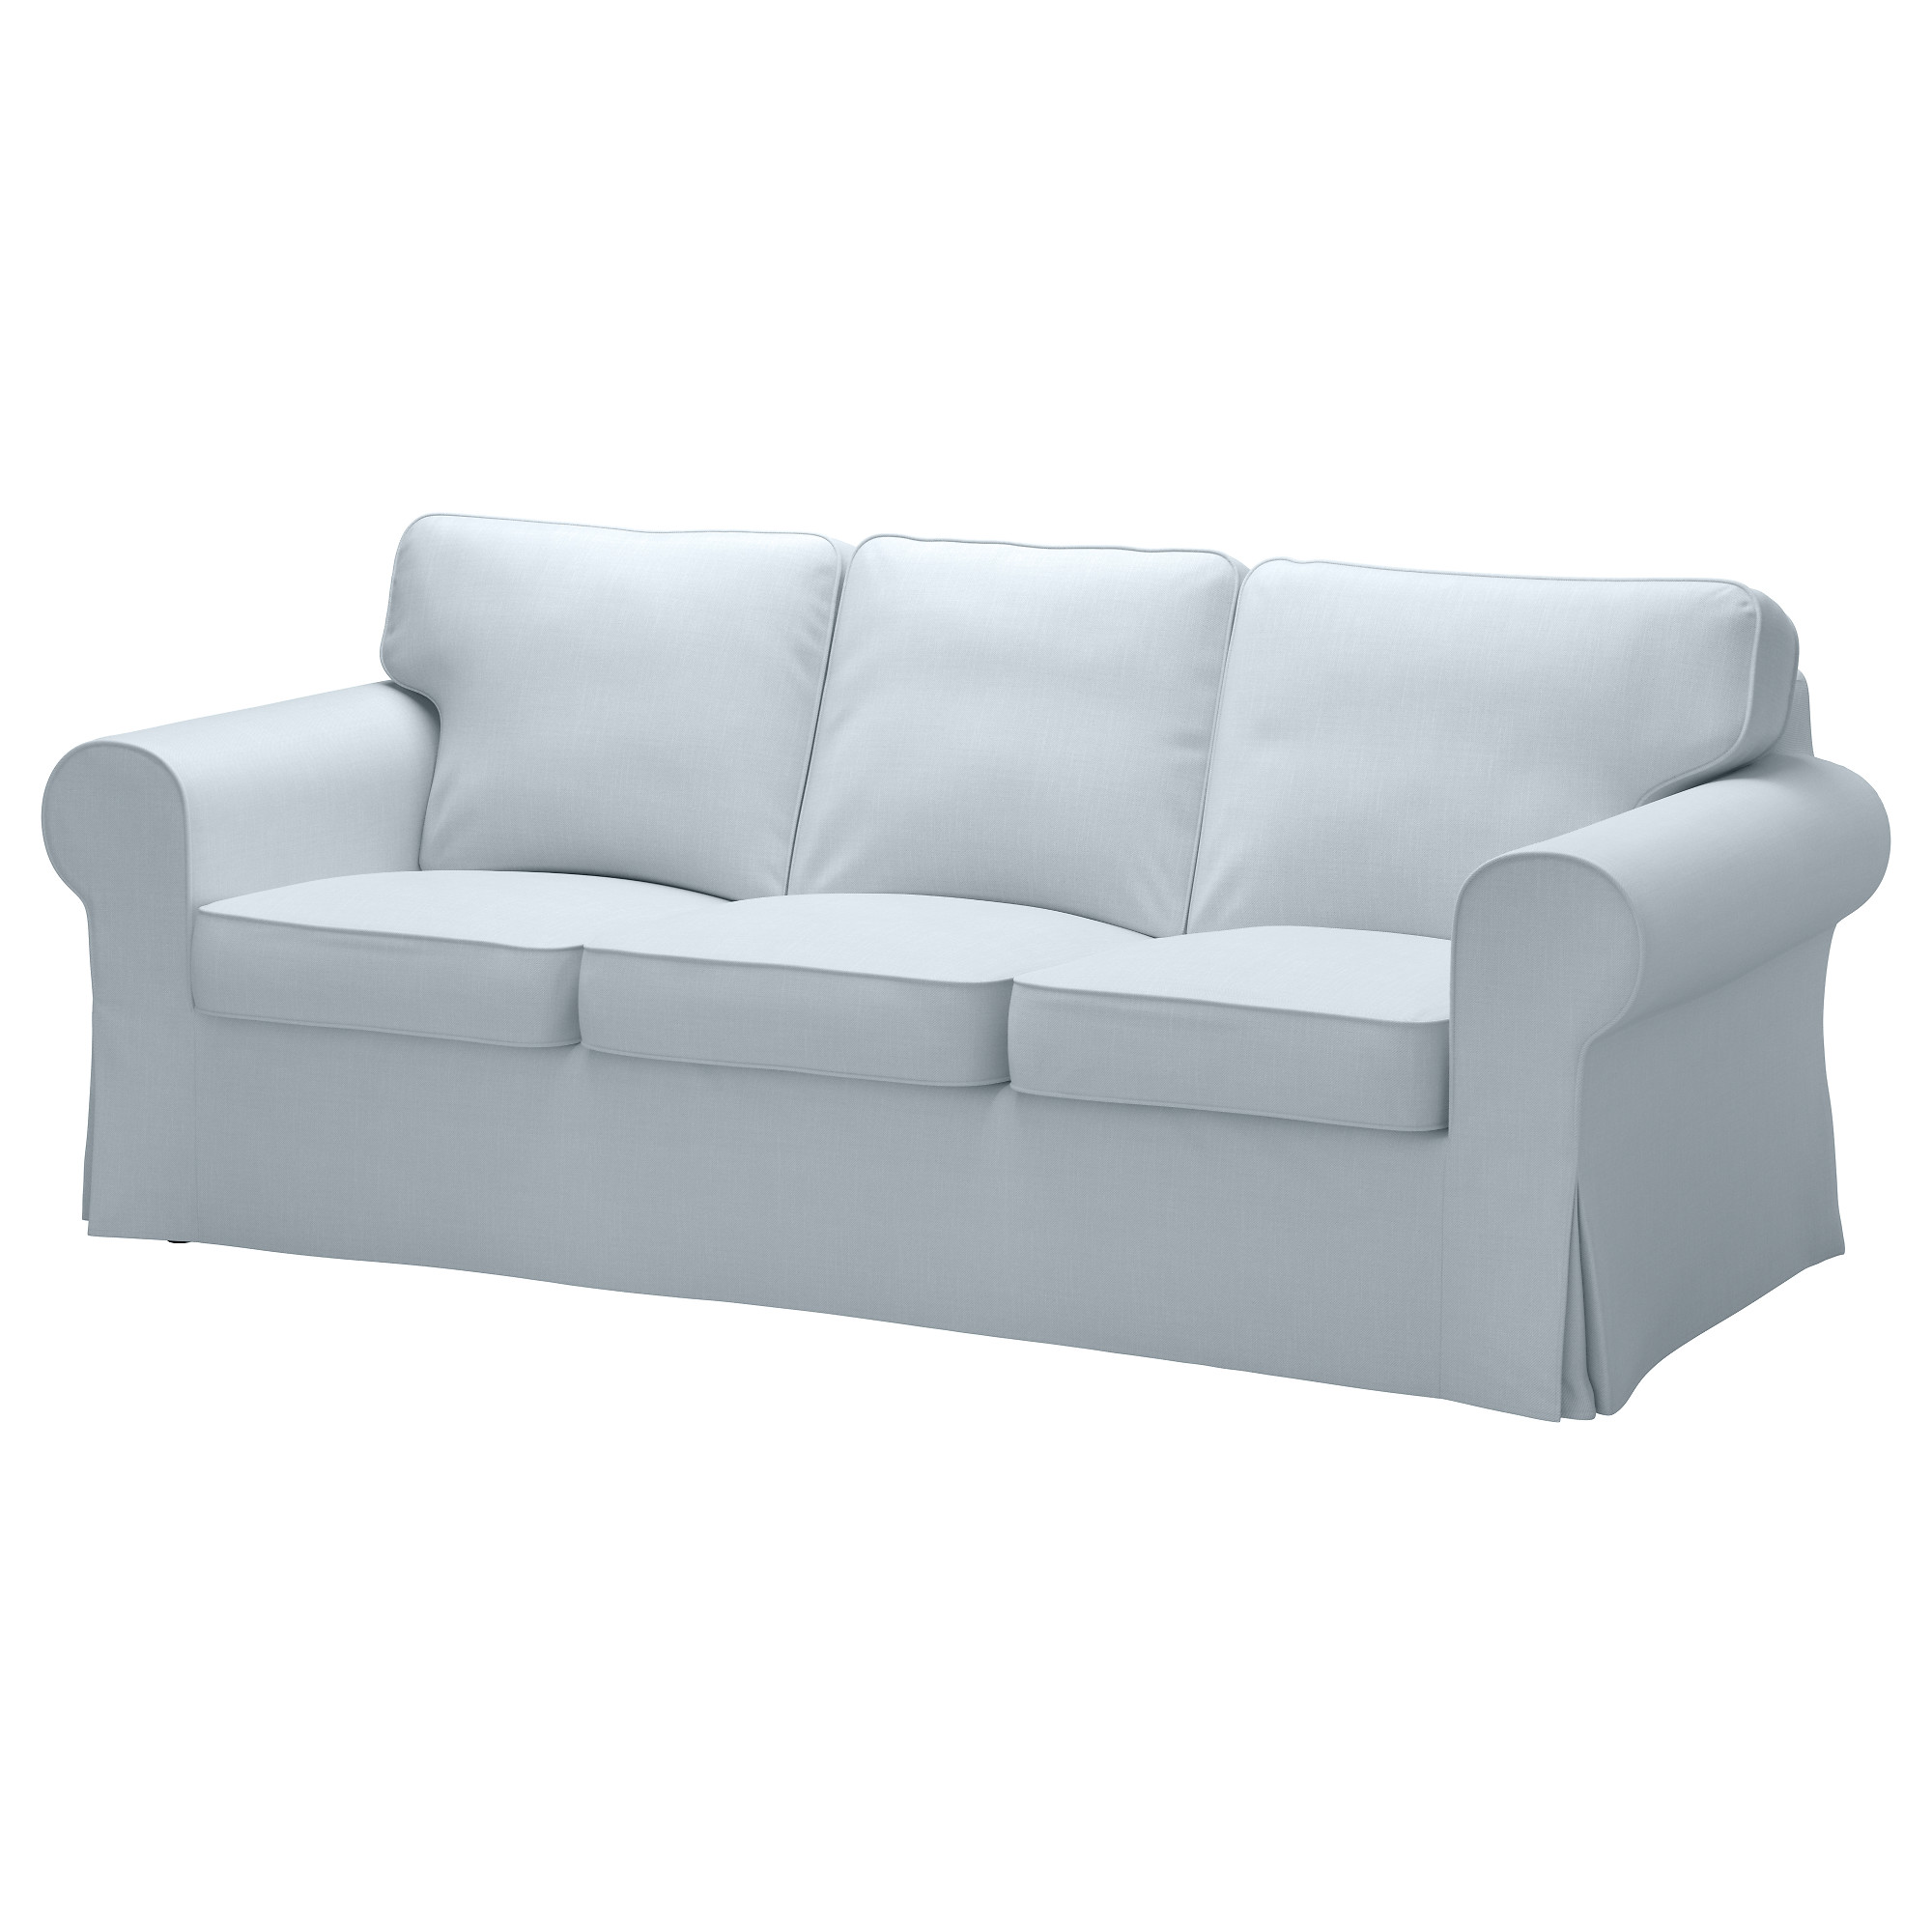 Captivating EKTORP Sofa   Lofallet Beige   IKEA